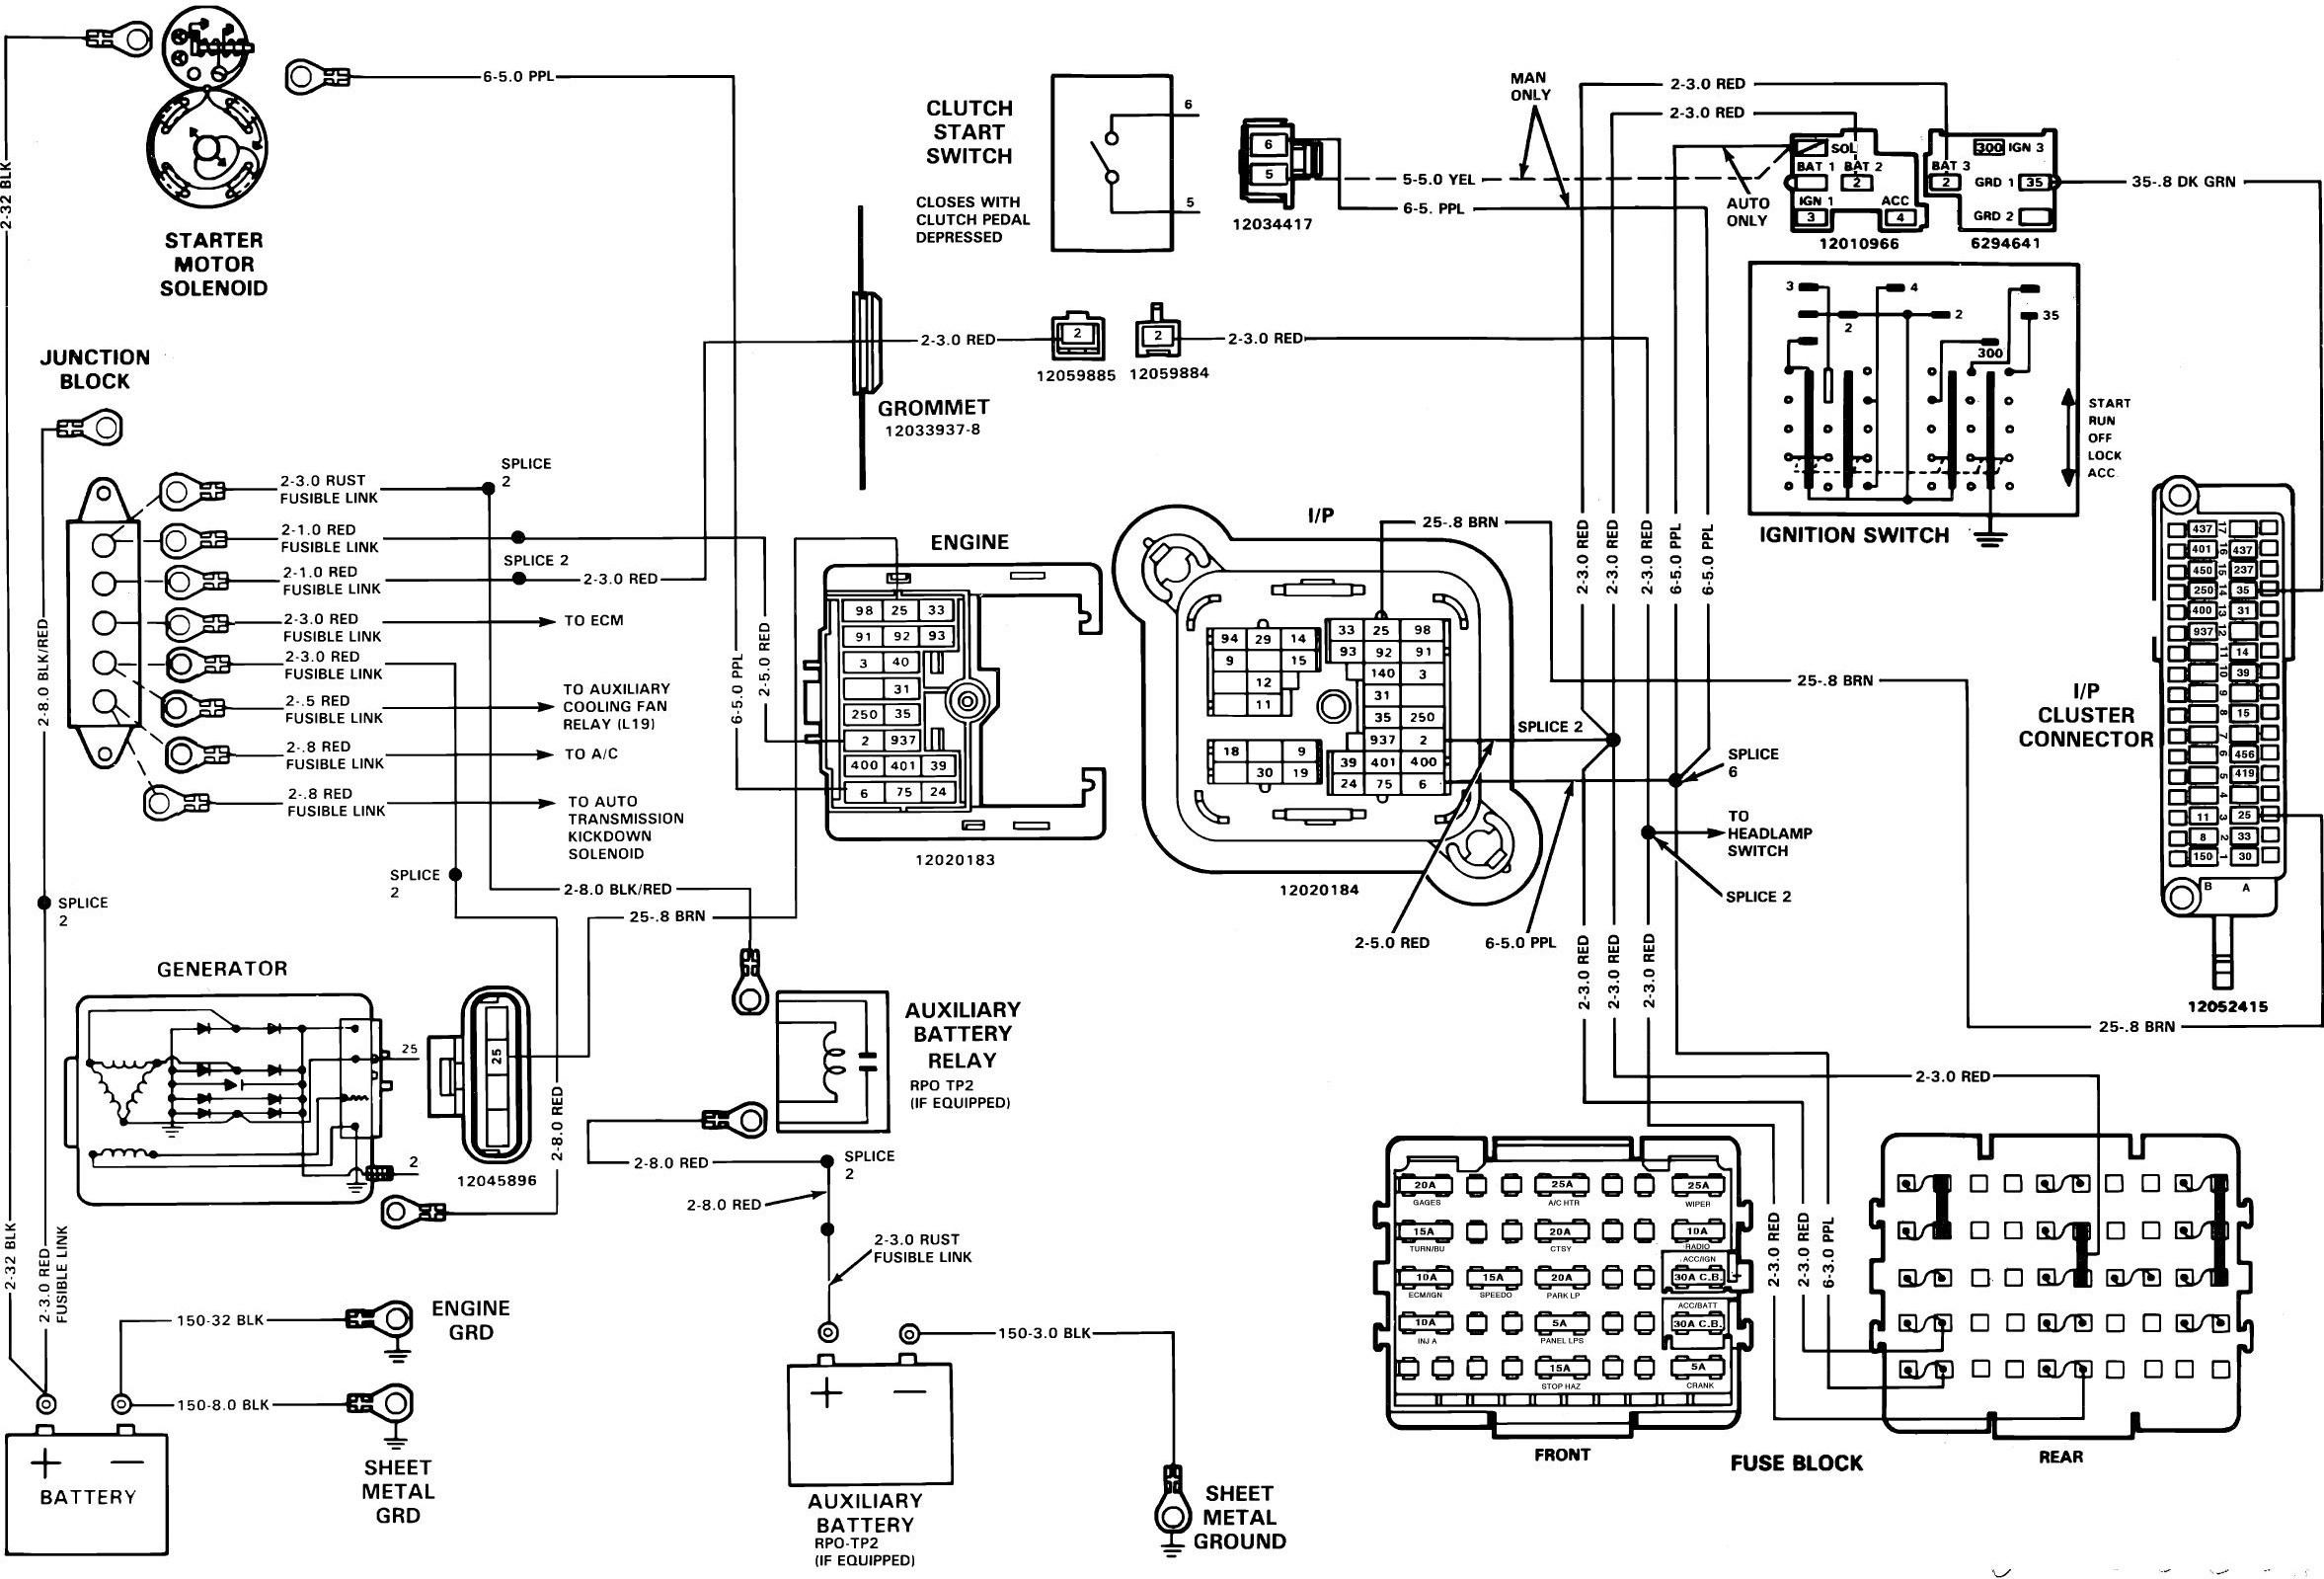 1990 C1500 Headlight Wiring Diagram. 1990 C1500 Wiring